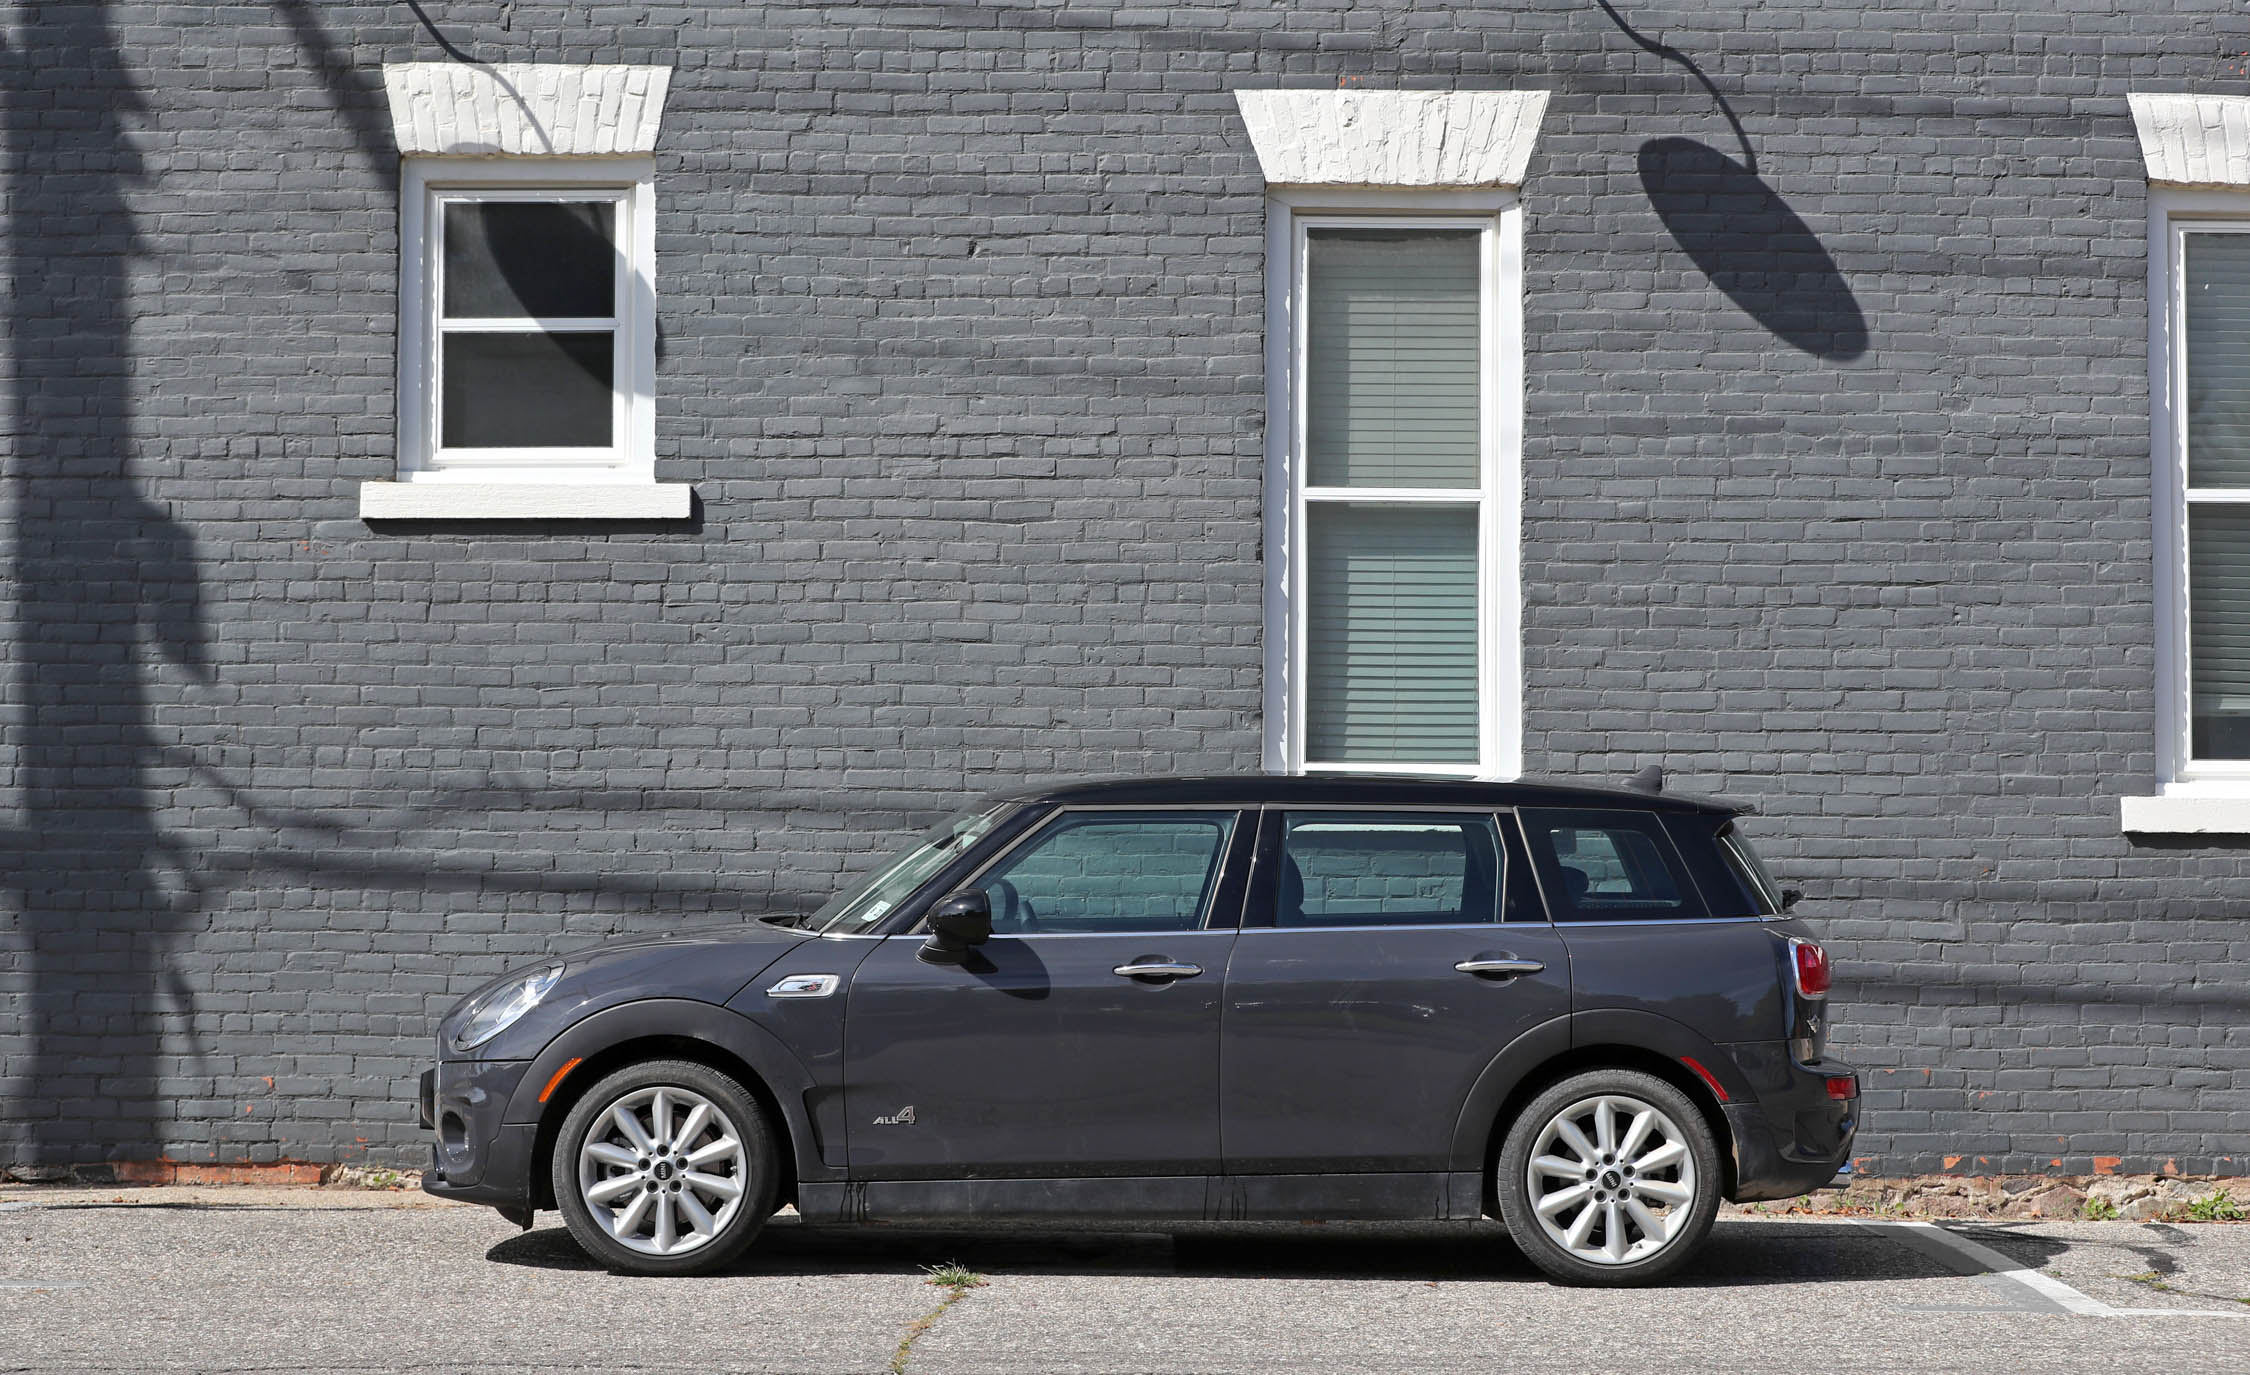 2017 Mini Cooper S ALL4 Clubman Exterior Side Profile (Photo 11 of 29)